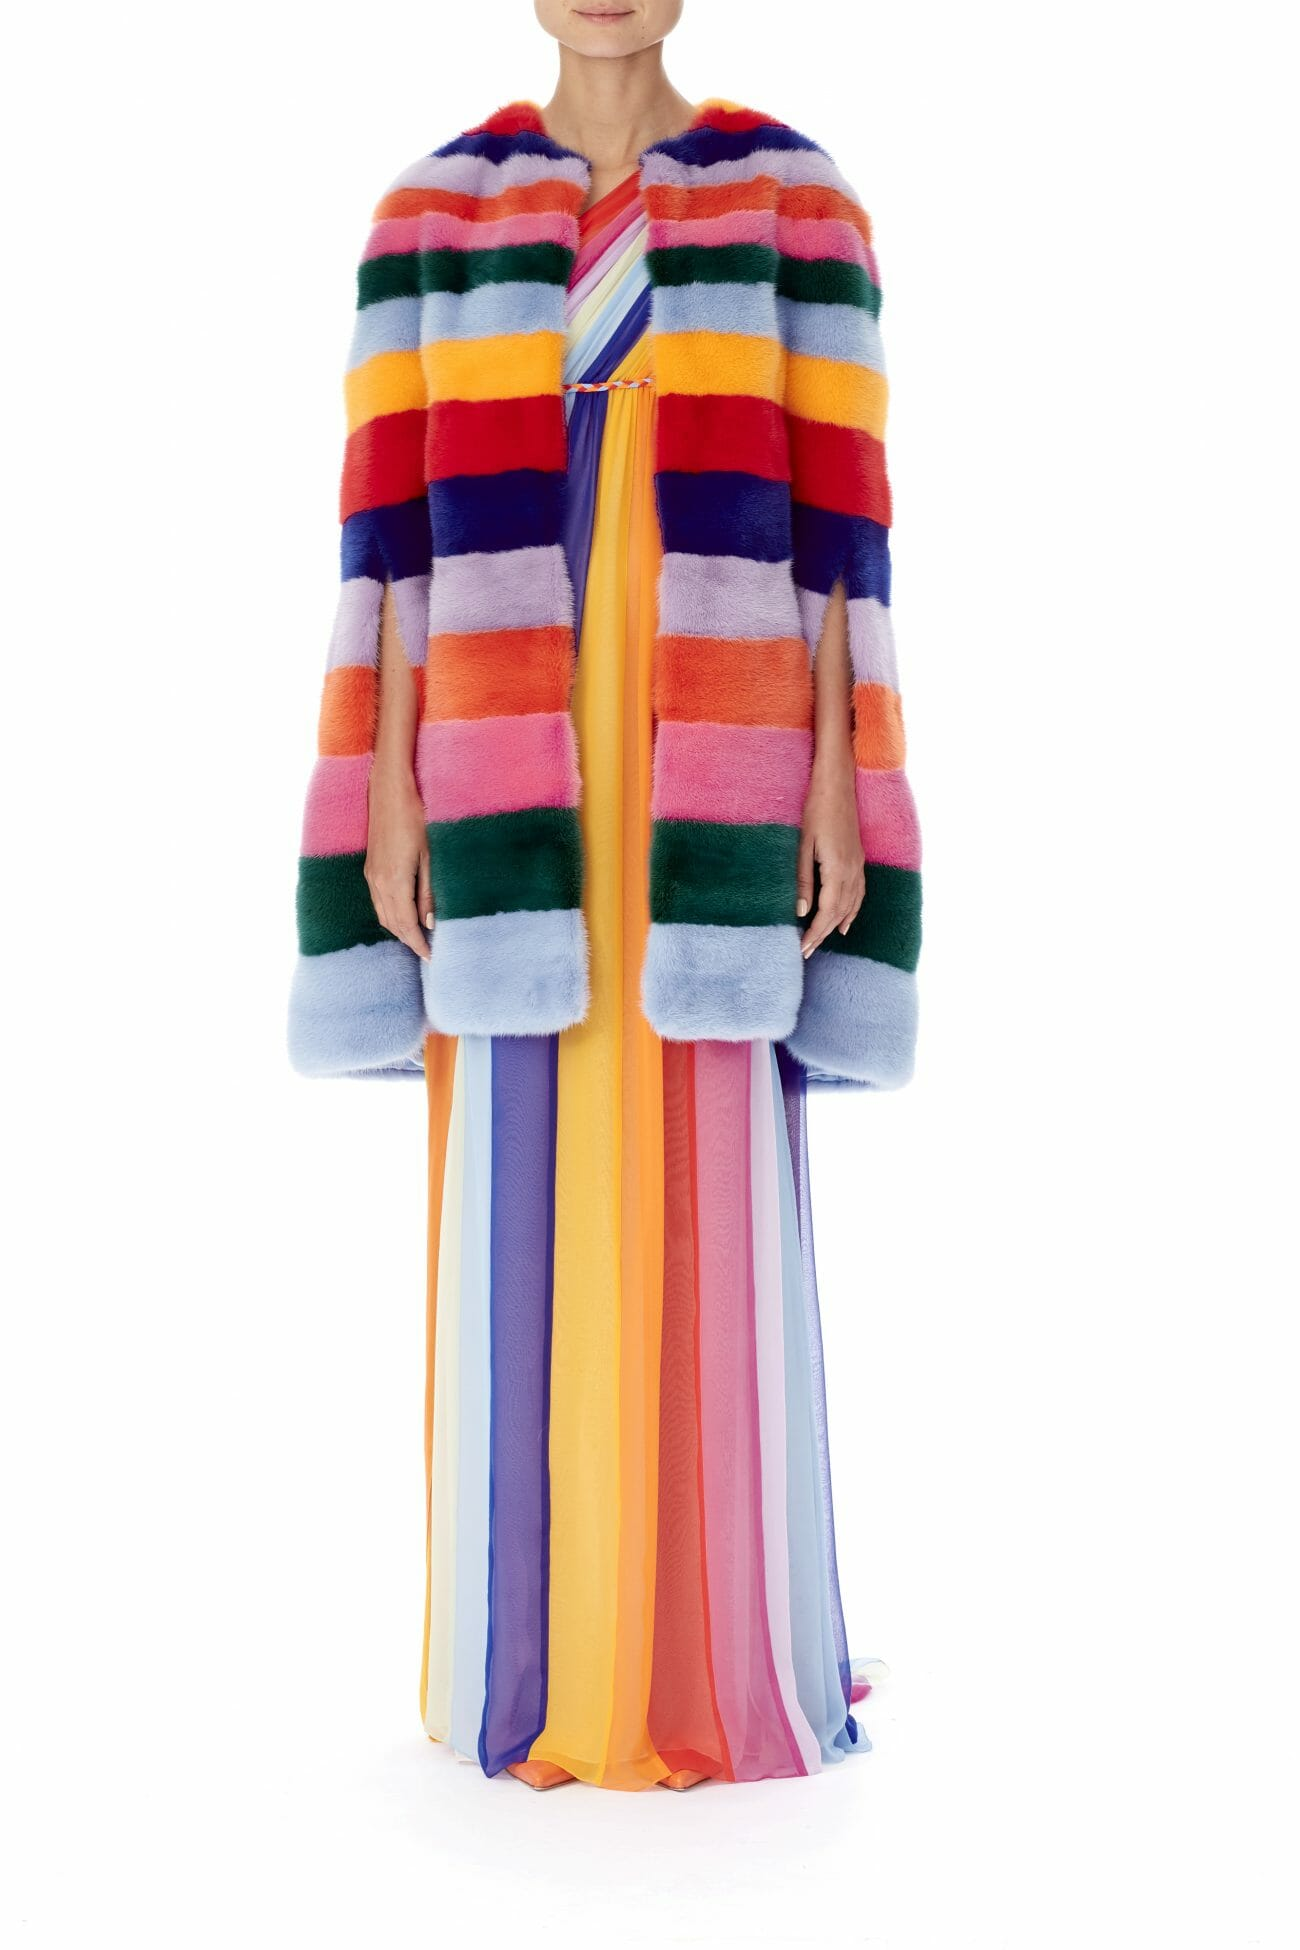 Carolina-Herrera-New-York-Resort-2019-look-157-colorful-rainbow-coat-dress-multicolor